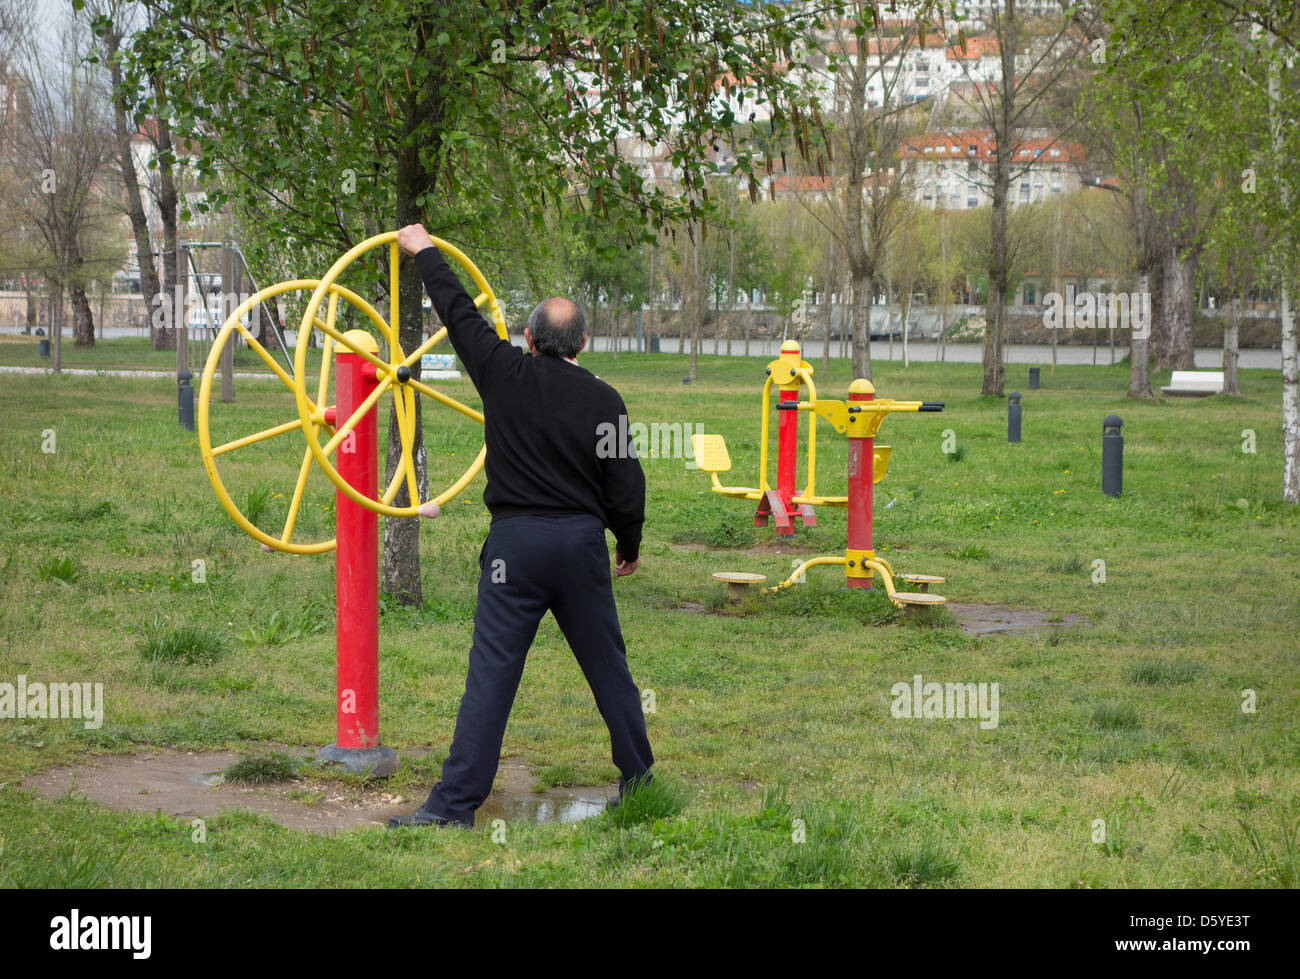 Person working out in an outdoors public fitness park - Stock Image